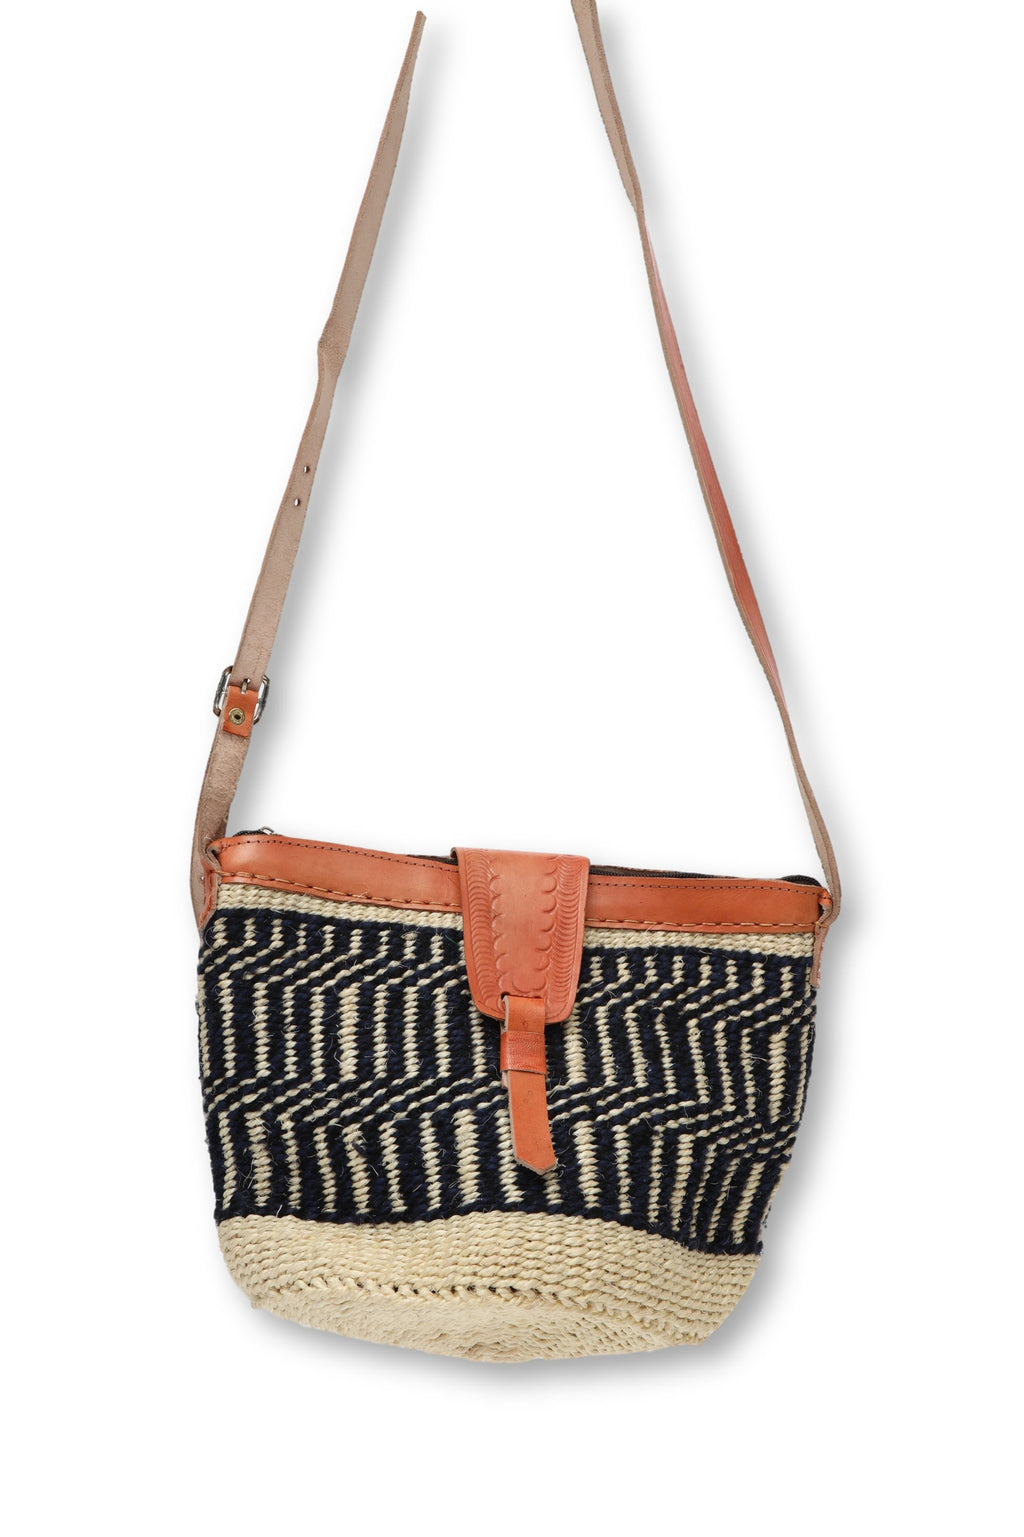 The Watamu Bag IV.